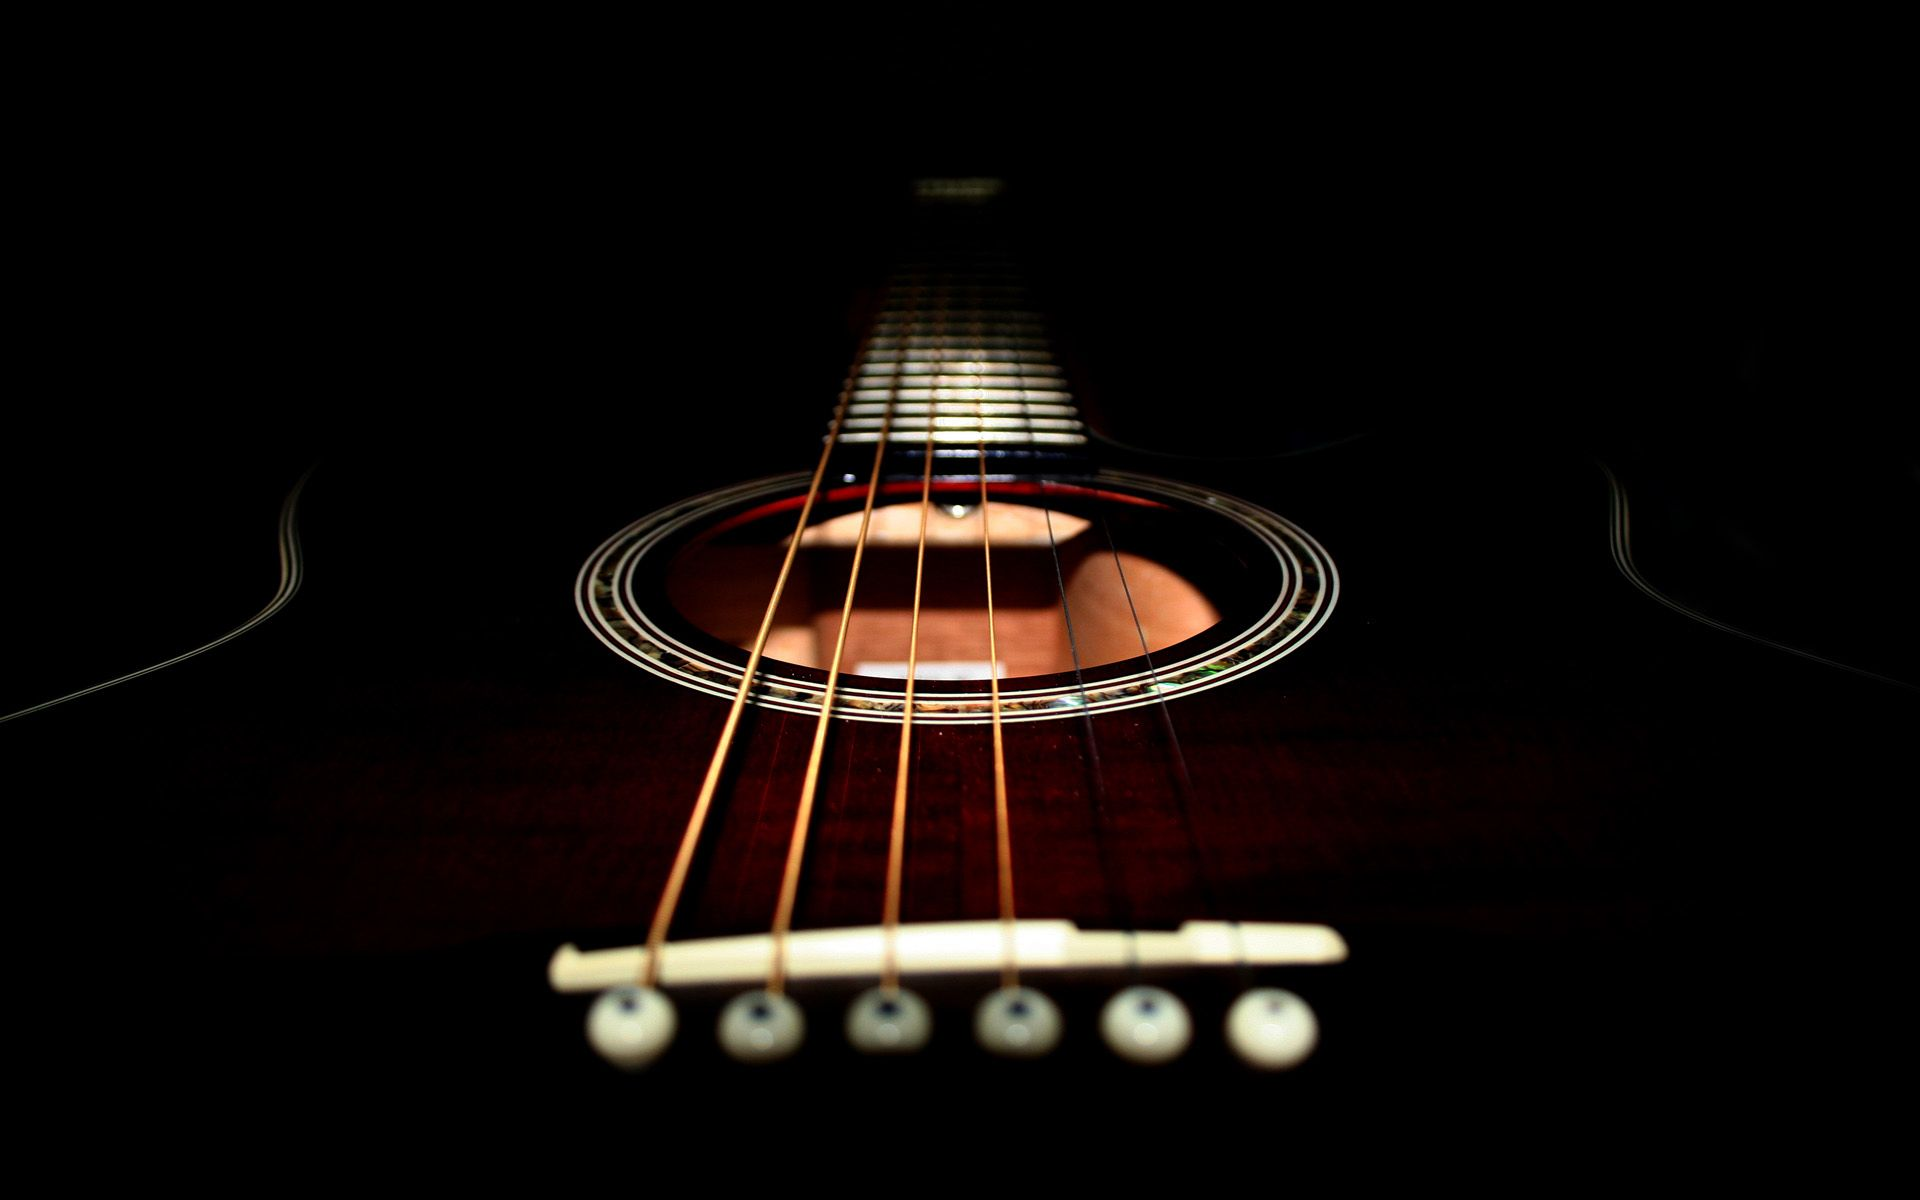 Acoustic Guitar Wallpaper Guitar Acoustic Song Music Wallpaper